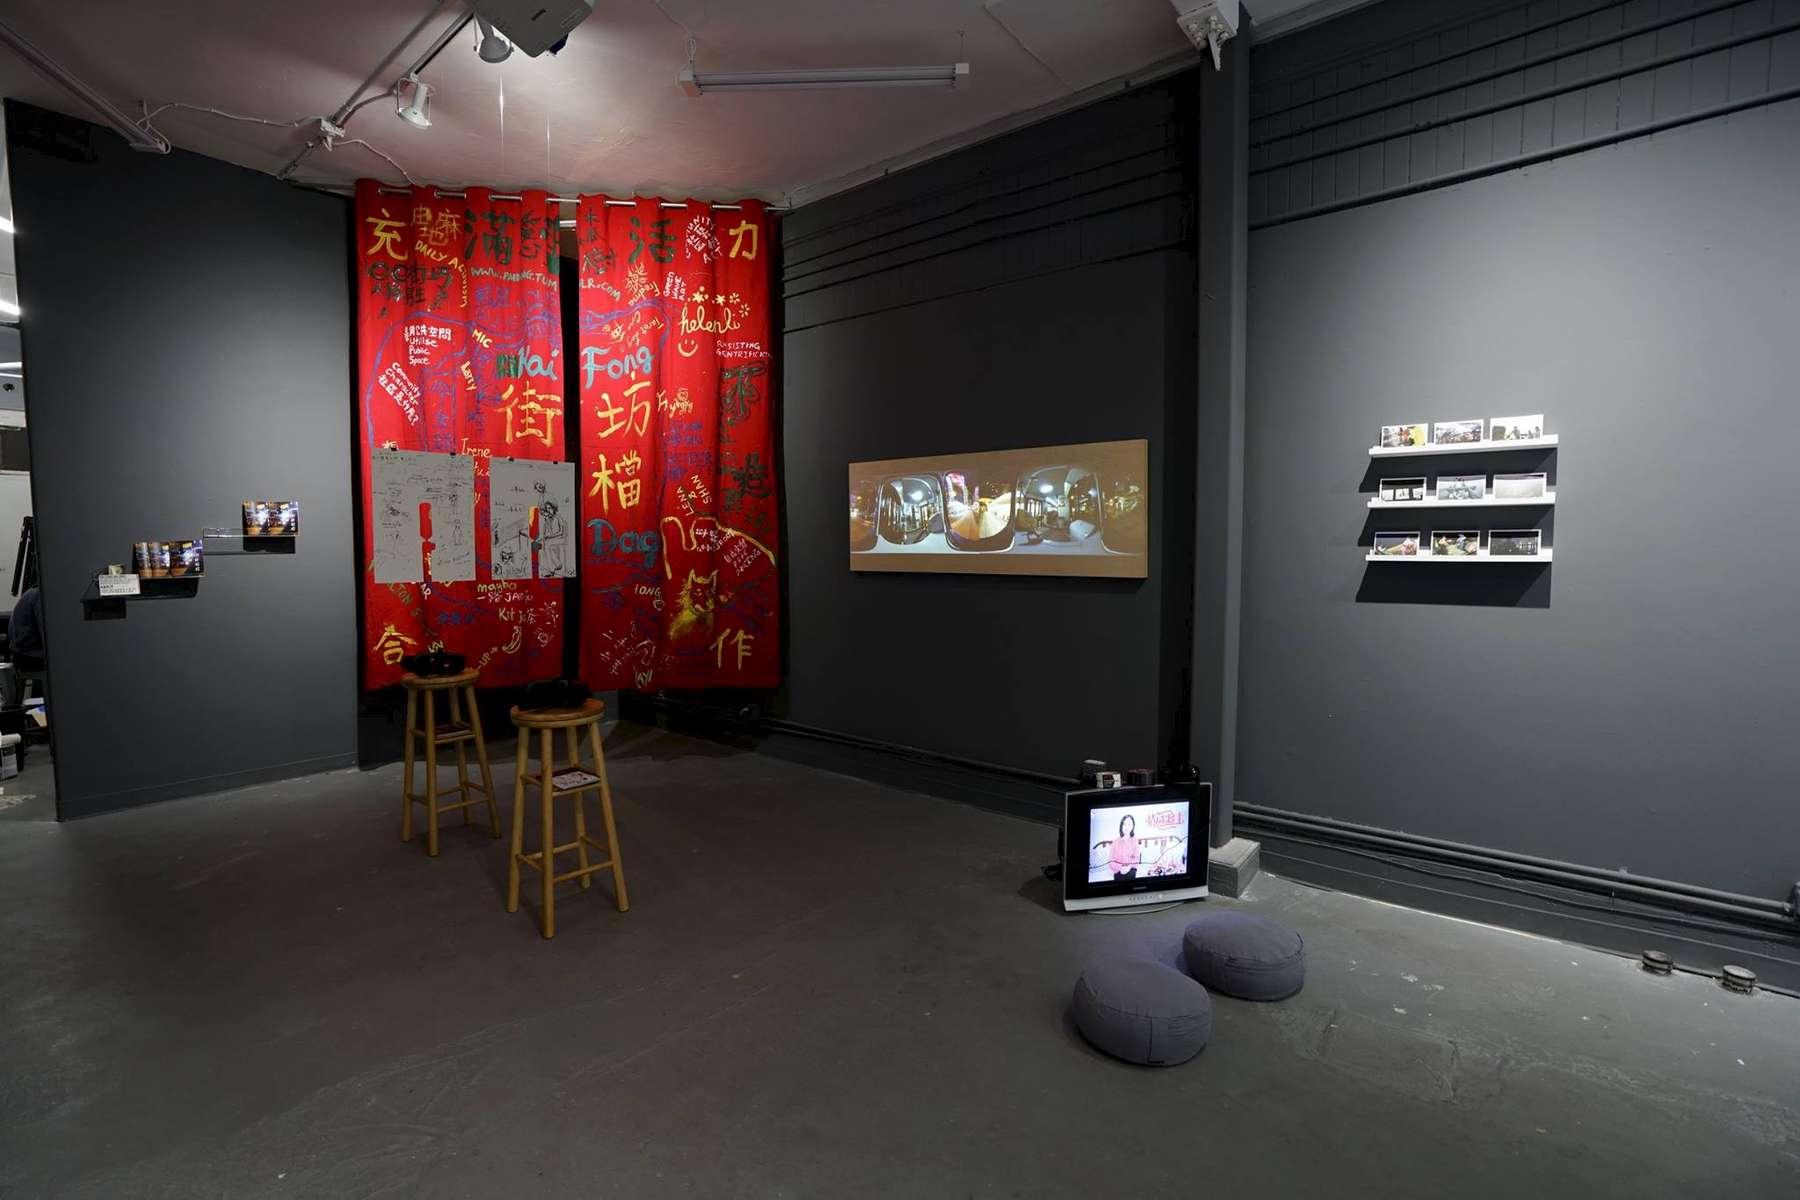 Works by artists in Sightlines (C&G Artpartment: centre left drawings on paper, VR, and Kinchoi Lam: video projection on wood, third from right) and the Pearl River Delta project are seen here in New Urban Legend: Resistance of Space, curated by Ziying Duan, at 41 Ross art space, San Francisco. Exhibition ran from May-July 2017.Sightlines - Hong Kong is a collective project. It is a collaboration with artists C&G Artpartment, Kinchoi Lam, Lam Wing Sze, and South Ho Siu Nam, conceptualised by Michelle Wong and myself. Taking the Umbrella Movement as a departure point, the project uses 360 vision in conversation between artists and society to explore the relationship between aesthetics, politics and technology in the city, and the condition of living in Hong Kong today.Photo by South Ho